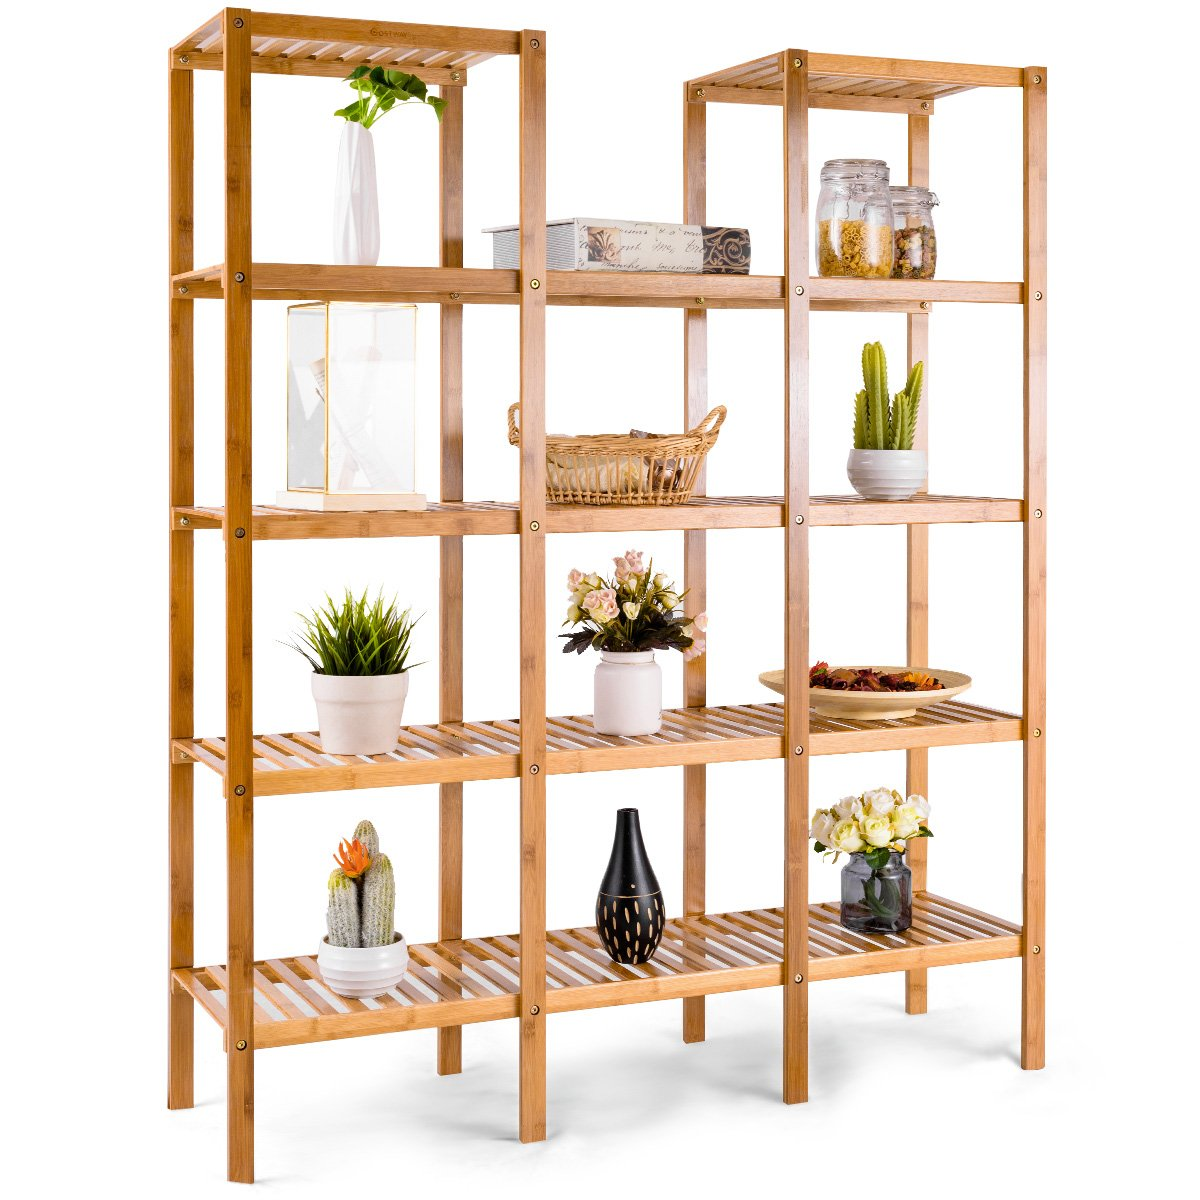 COSTWAY Bamboo Utility Shelf Bathroom Rack Plant Display Stand 5-Tier Storage Organizer Rack Cube W/Several Cell Closet Storage Cabinet (12-Pots) by COSTWAY